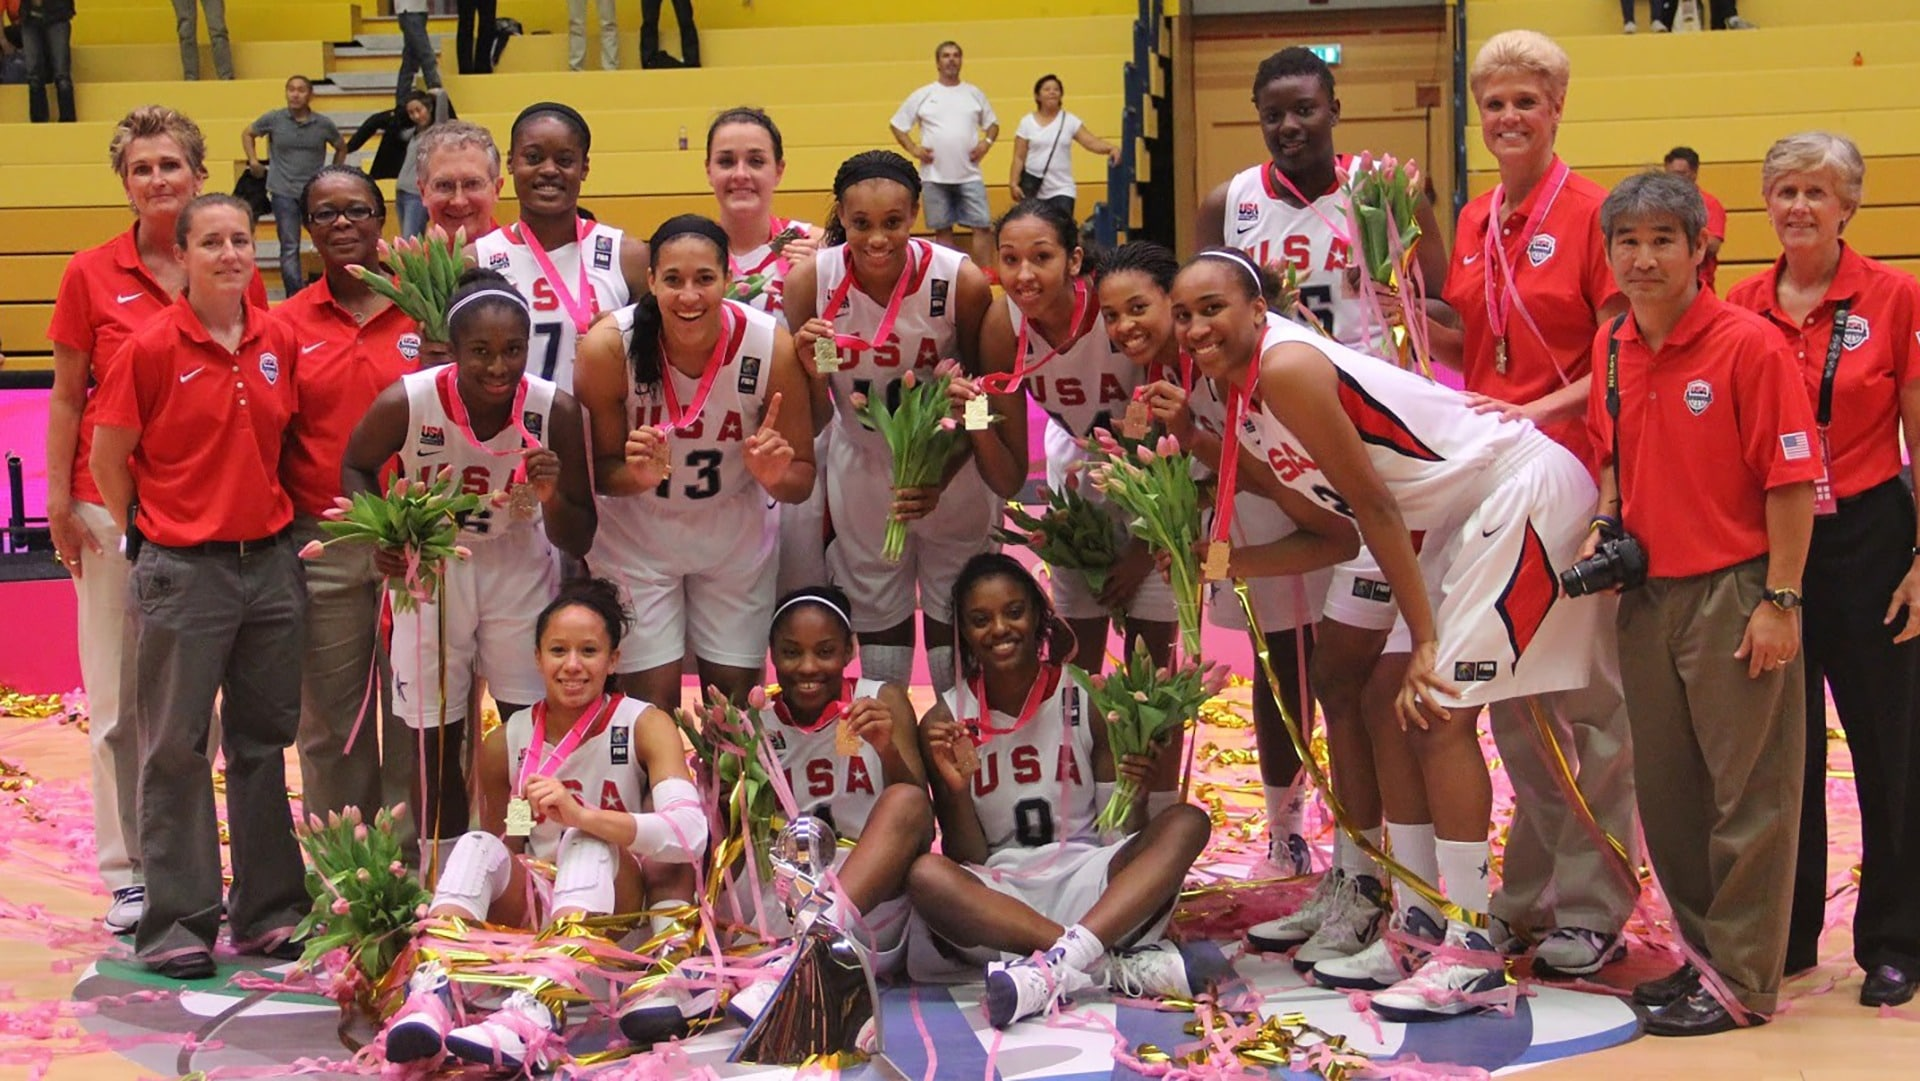 Jill Rankin Schneider poses with her team at the victorious 2012 under-17 world championships.